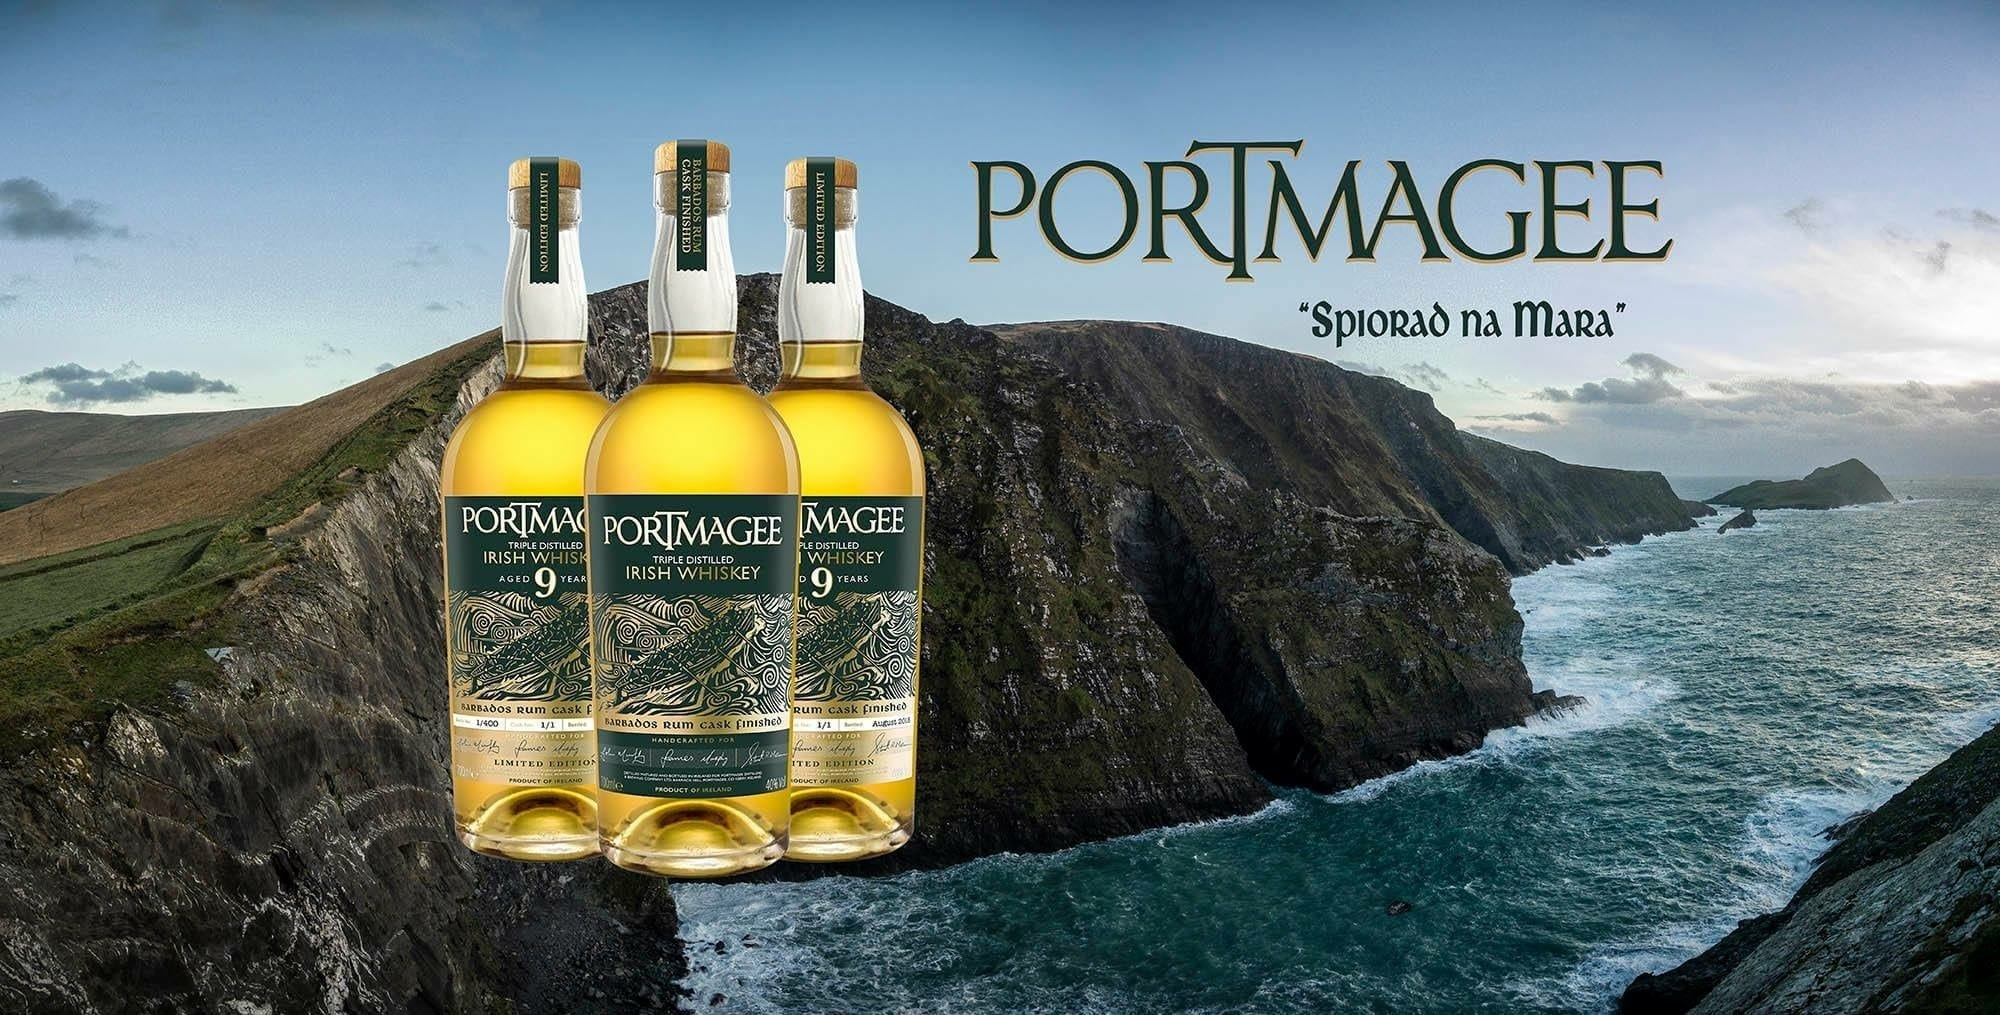 Portmagee 9 Year Old Irish Whiskey Review Stuart McNamara Irish Whiskey Blogger